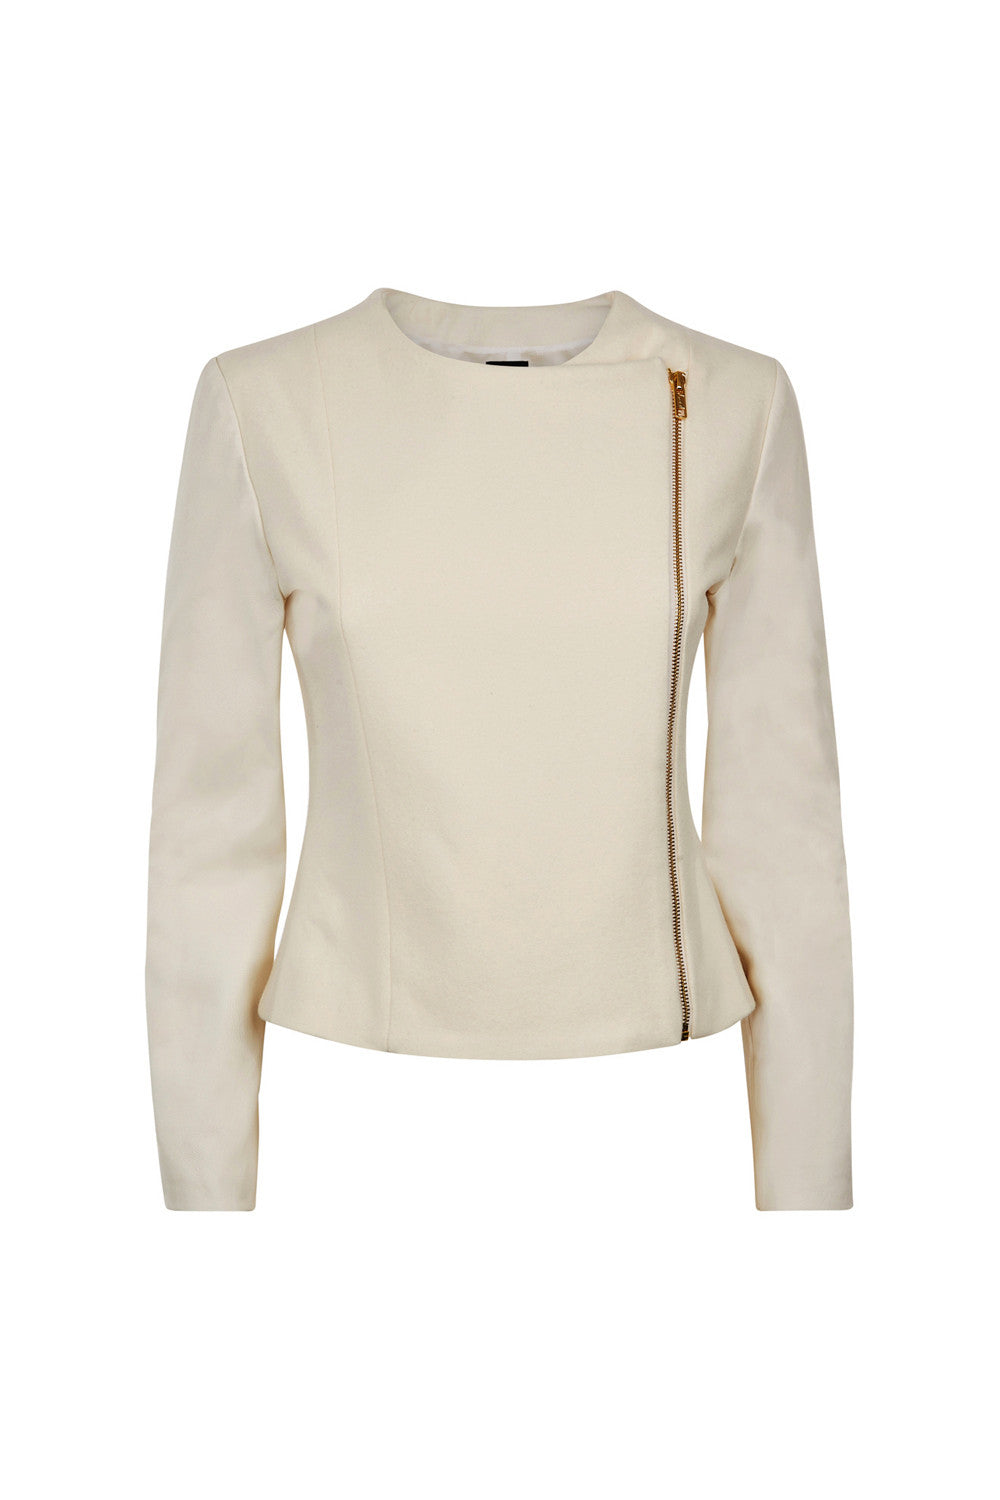 Gwen Jacket - Cream - Womenswear Outlet - Madderson London